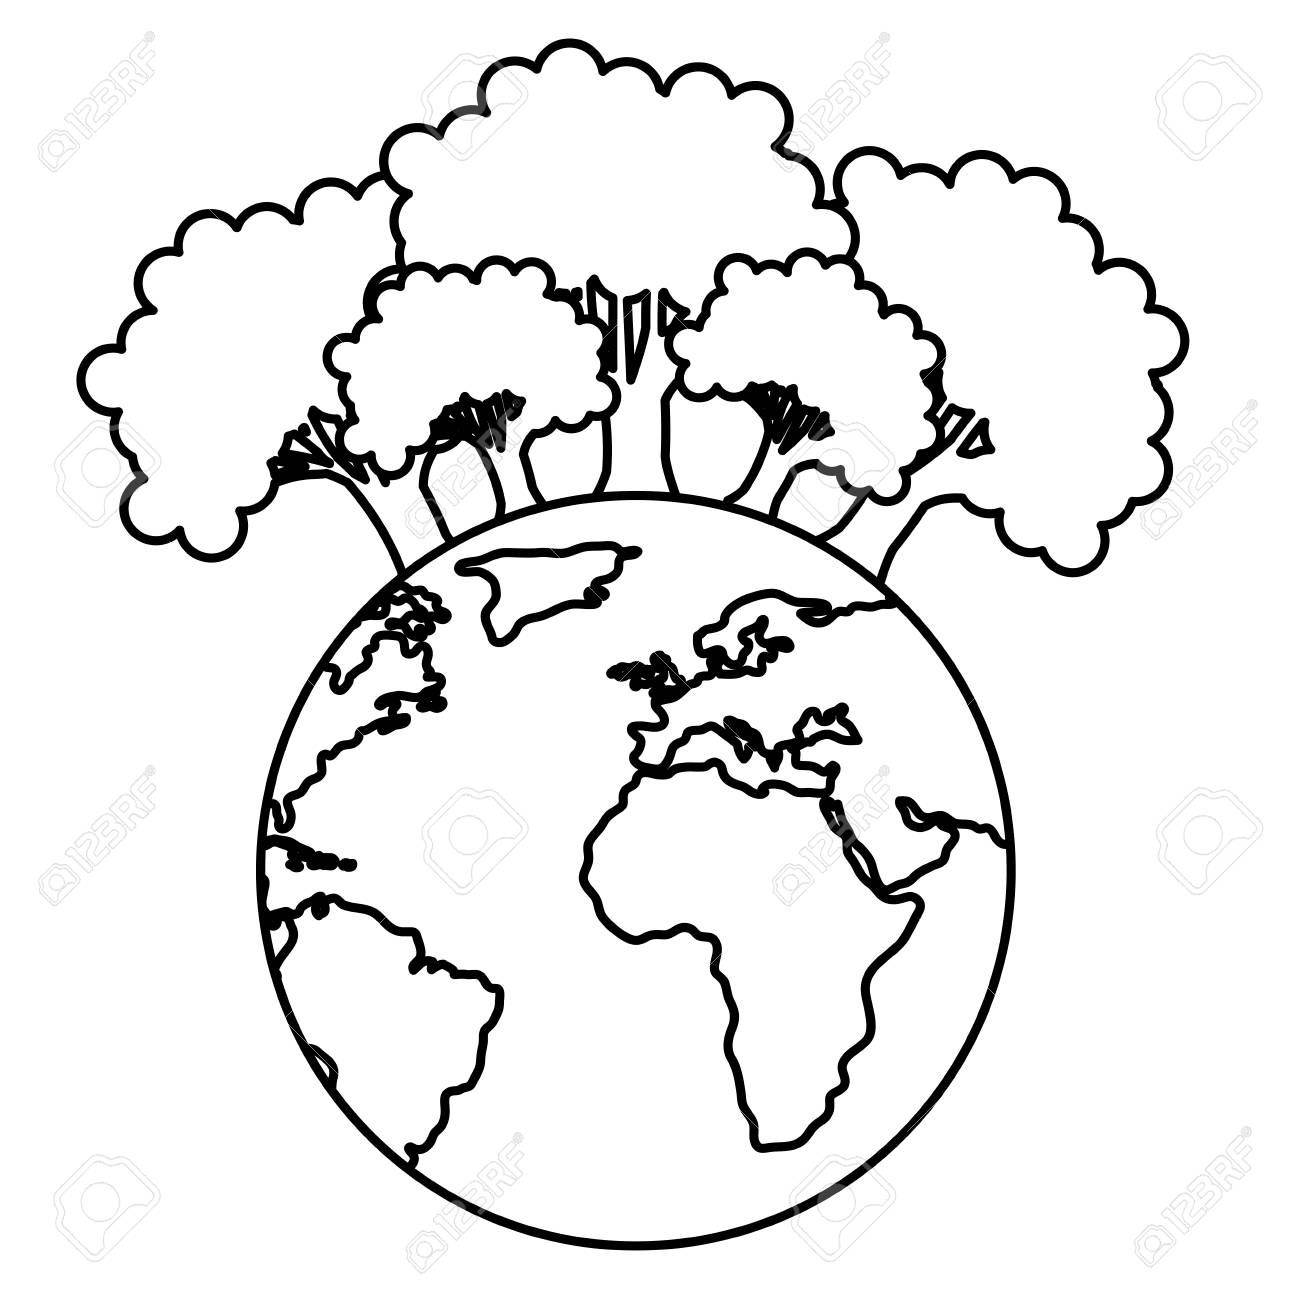 Save The Planet Earth With Forest Trees Ecology Vector Illustration Design Stock Vector 10 Vector Illustration Illustration Design Vector Illustration Design